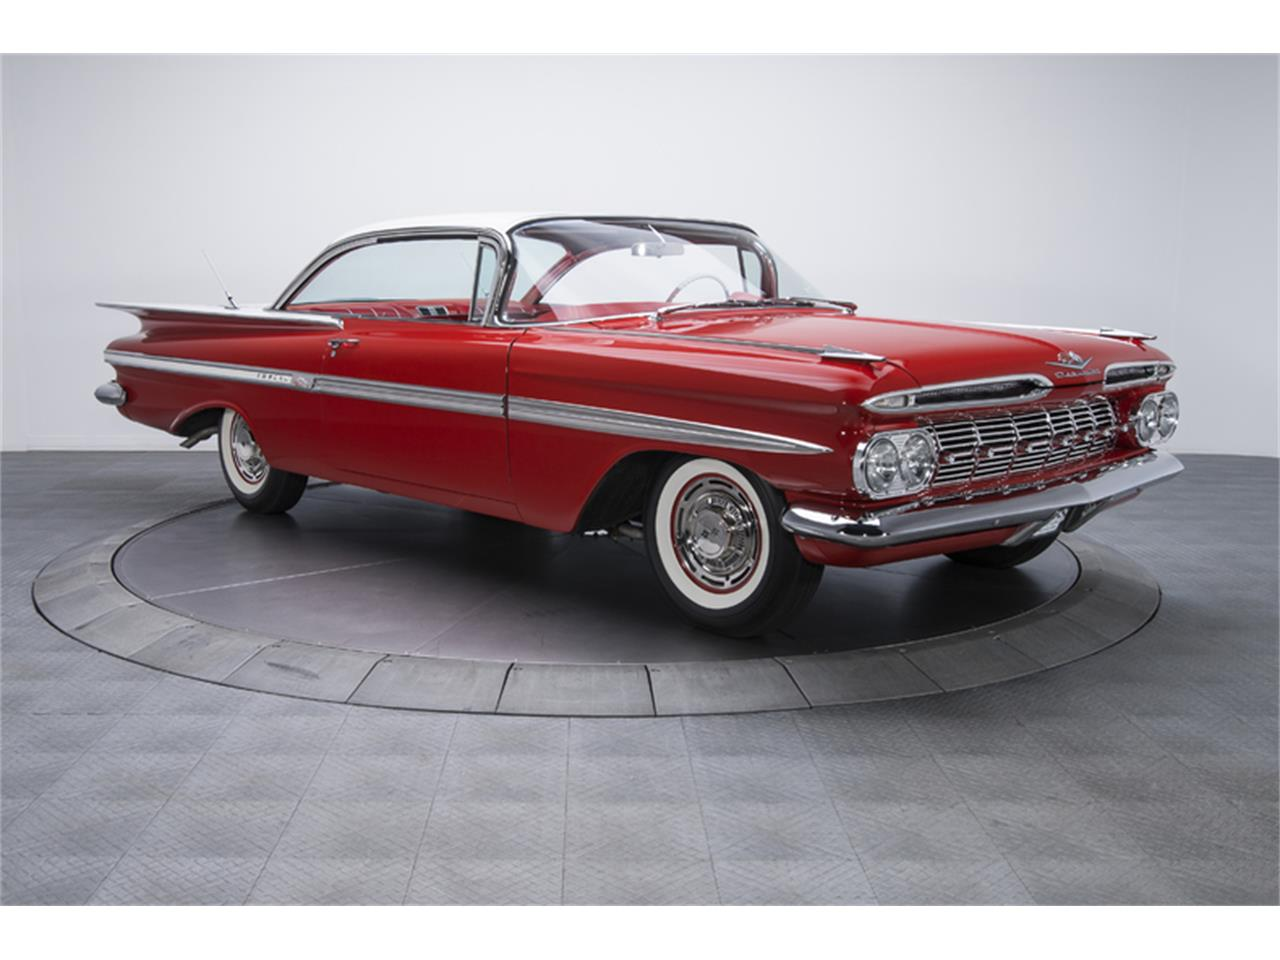 hight resolution of 1959 chevrolet impala for sale classiccars com cc 984225 1959 chevy impala convertible for sale on 1958 impala horn diagram